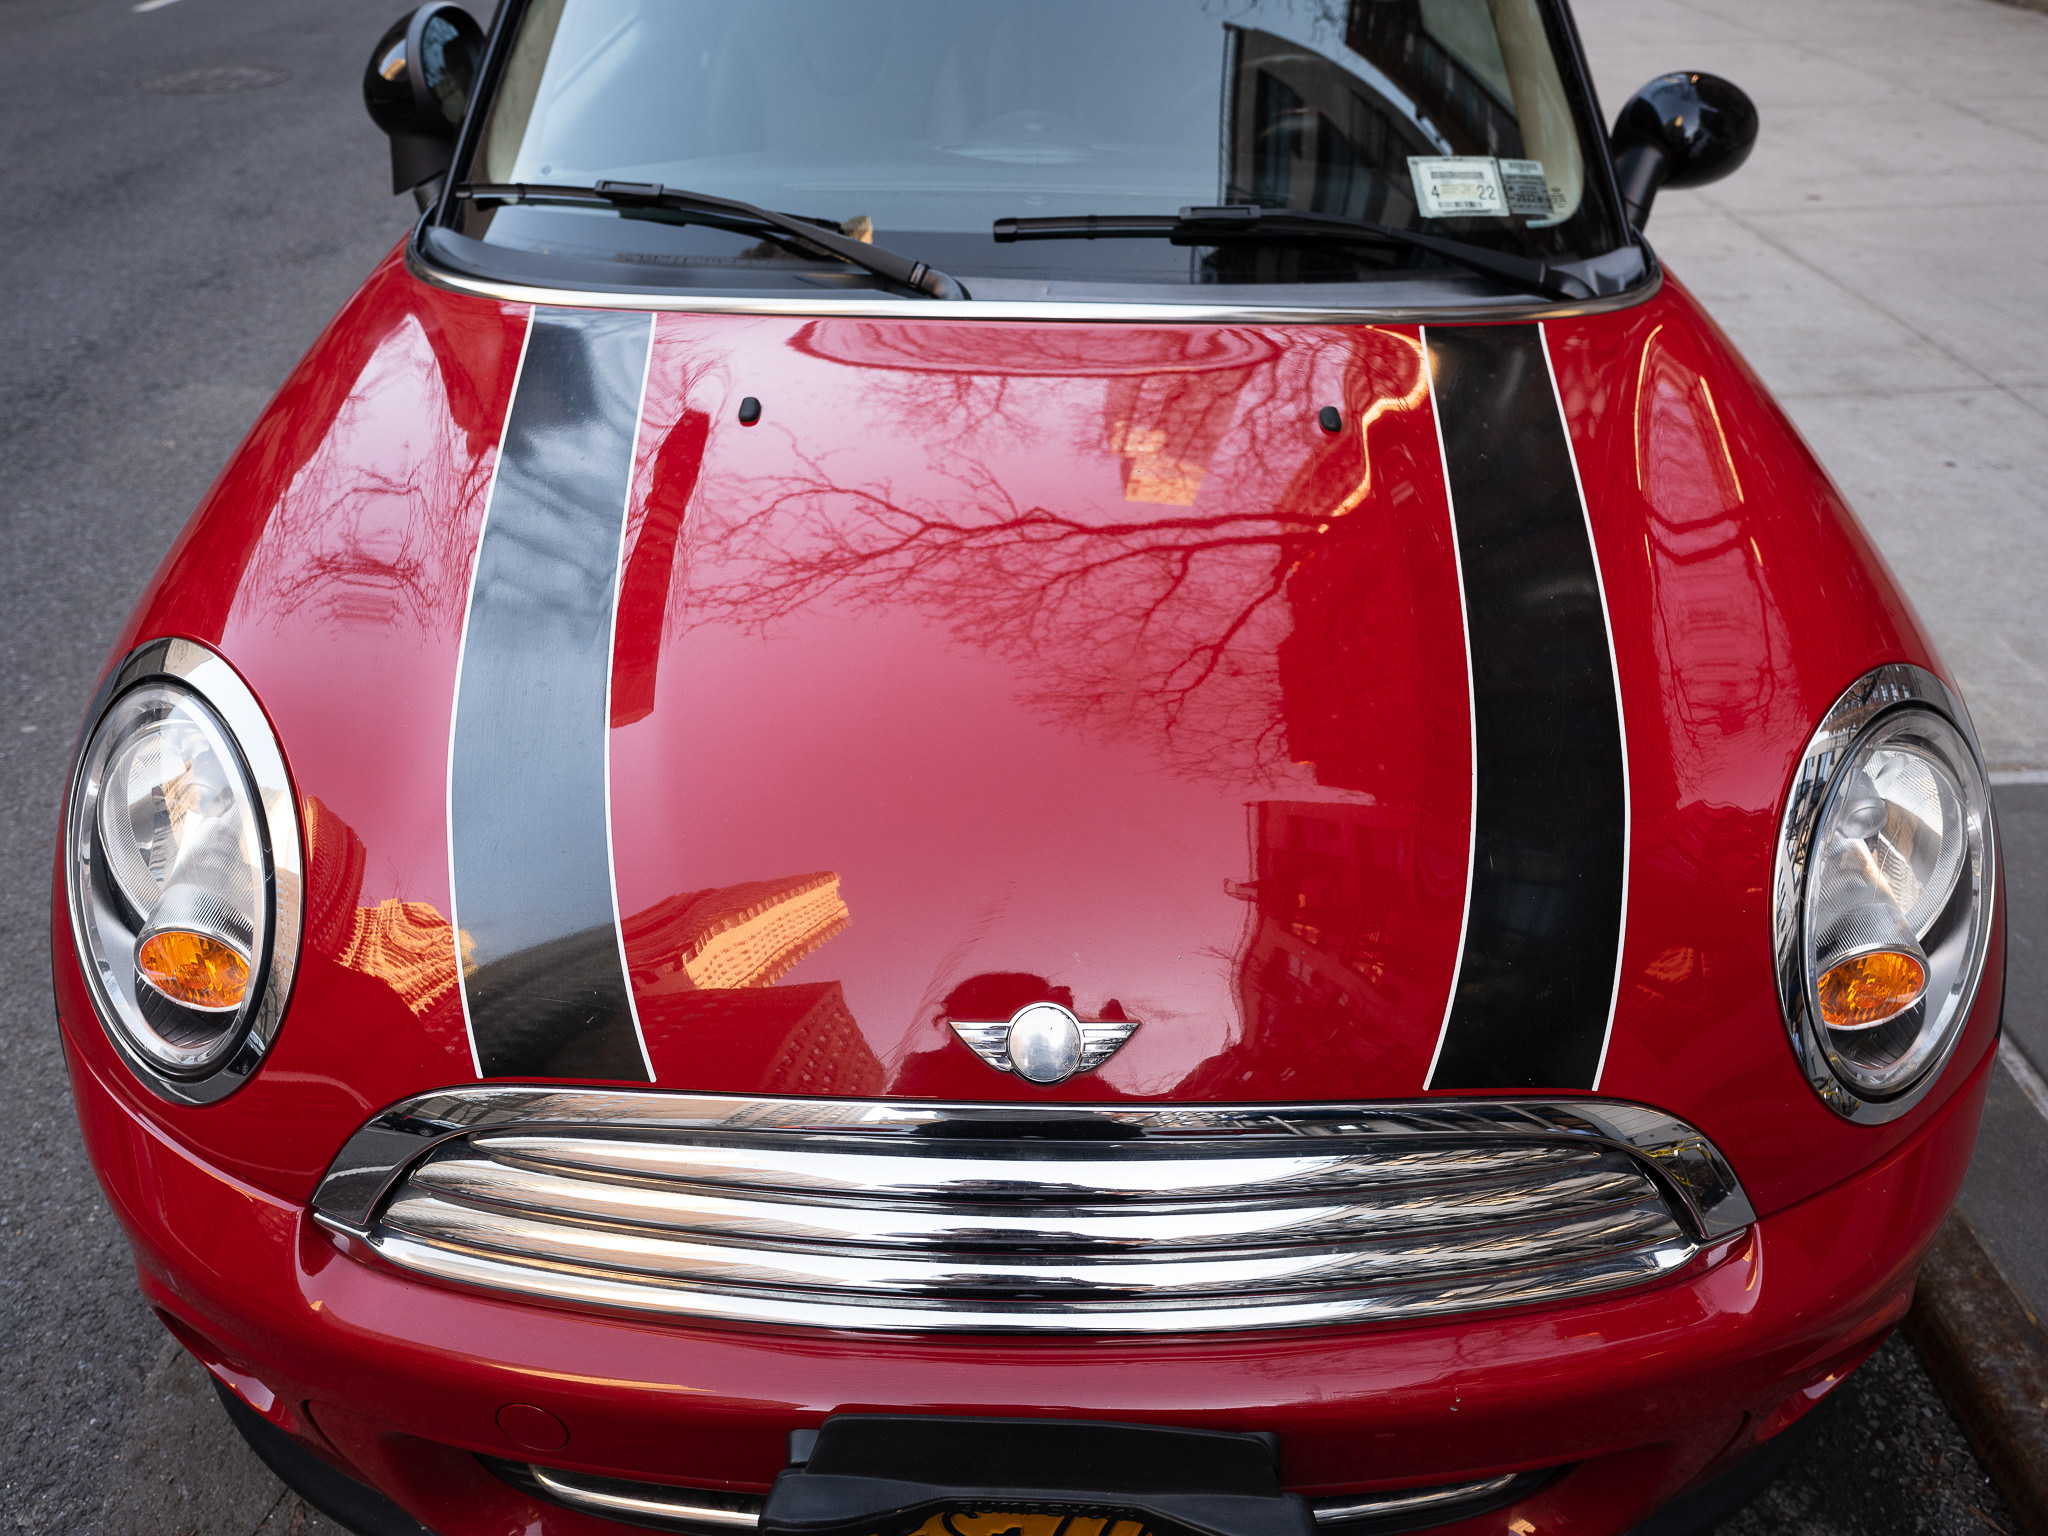 a photo of a red mini cooper parked in new york city